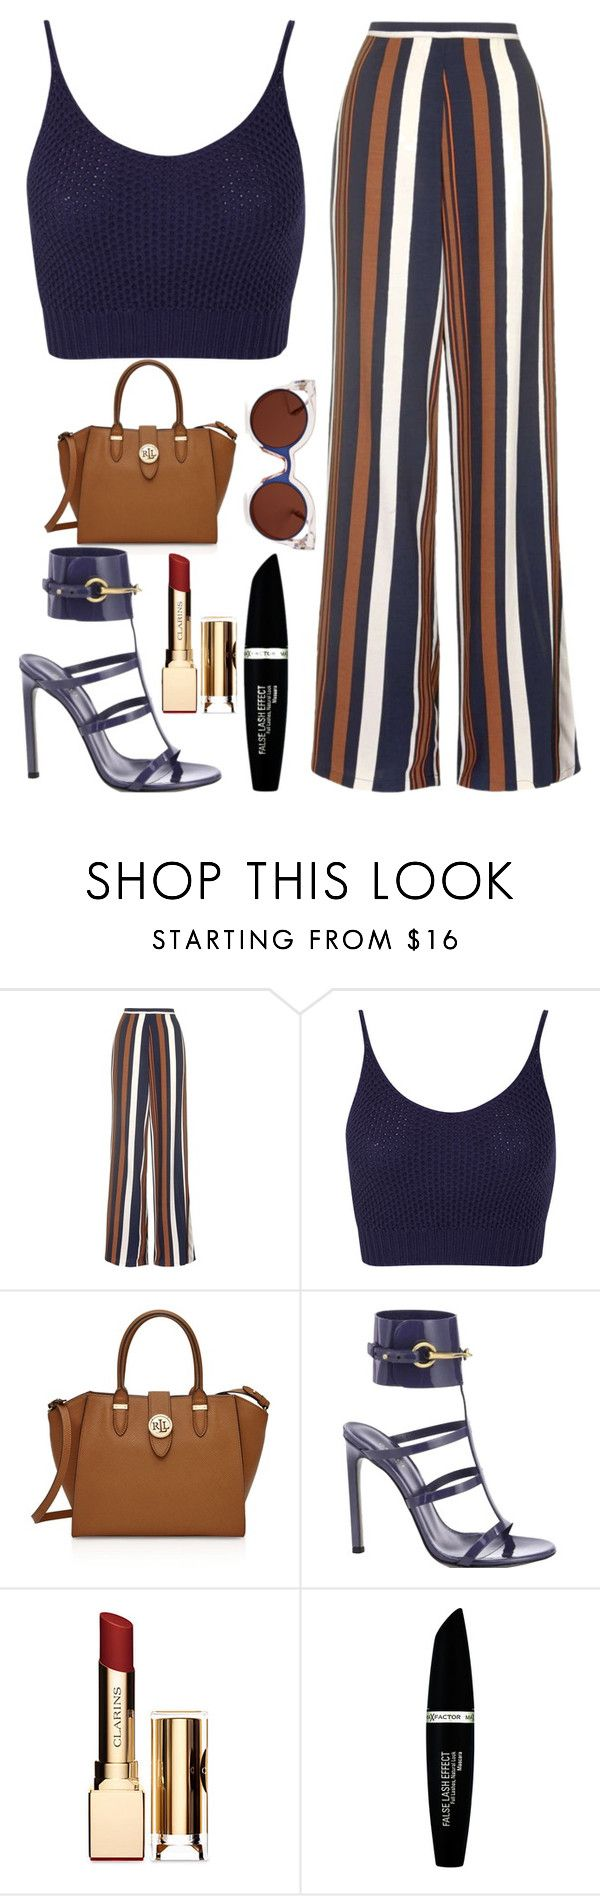 """""""Sun's Out"""" by kimeechanga ❤ liked on Polyvore featuring Topshop, Miss Selfridge, Ralph Lauren, Gucci, Clarins, Max Factor and Fendi"""